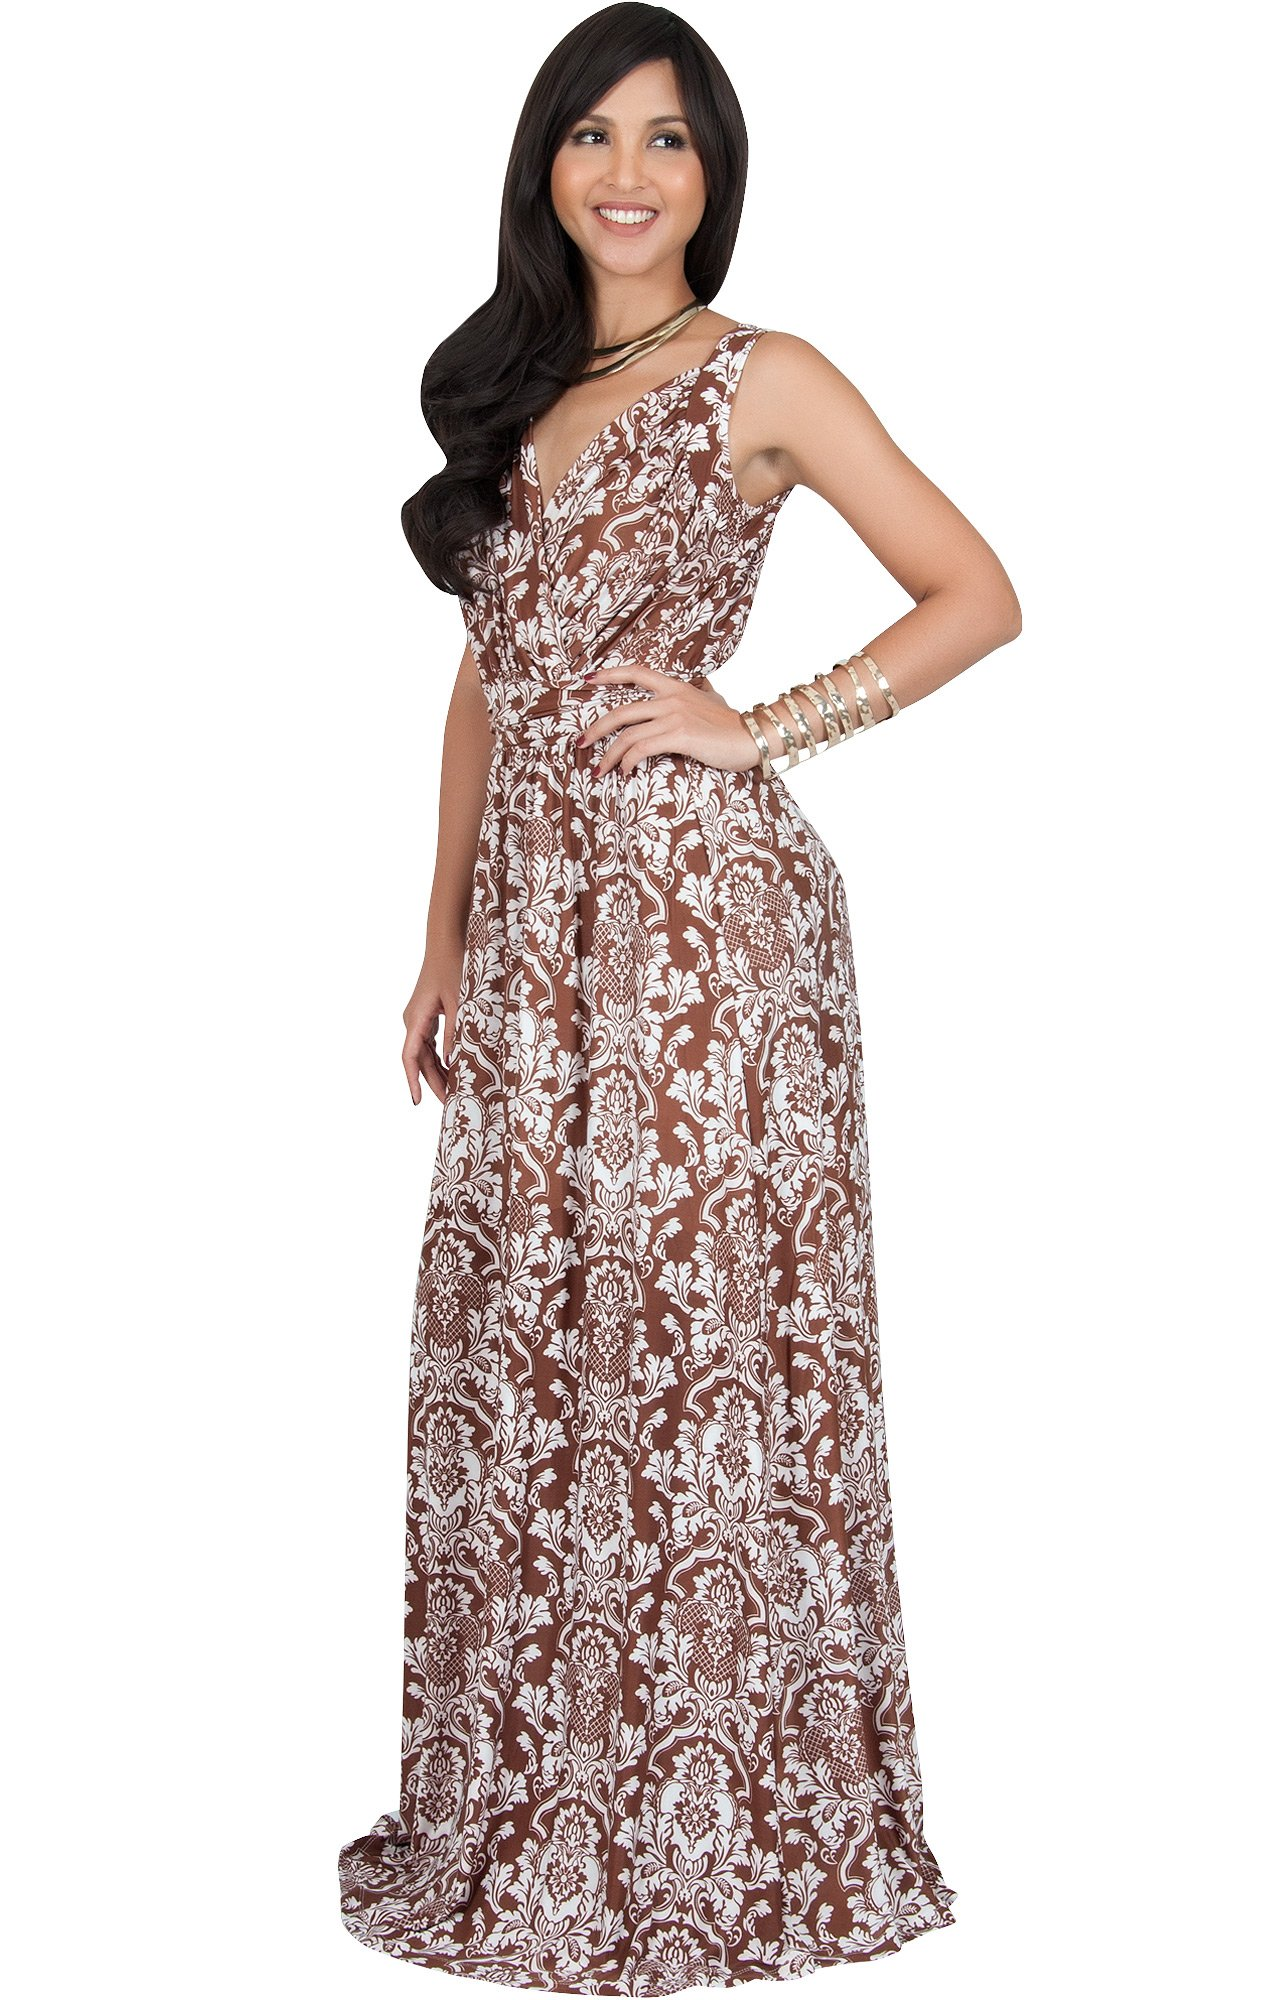 4f7a5e1d438f ... Floral Print Work Party Jersey Sexy Gown Gowns Maxi Dress Dresses,  Brown and White 2XL 18-20. ; 